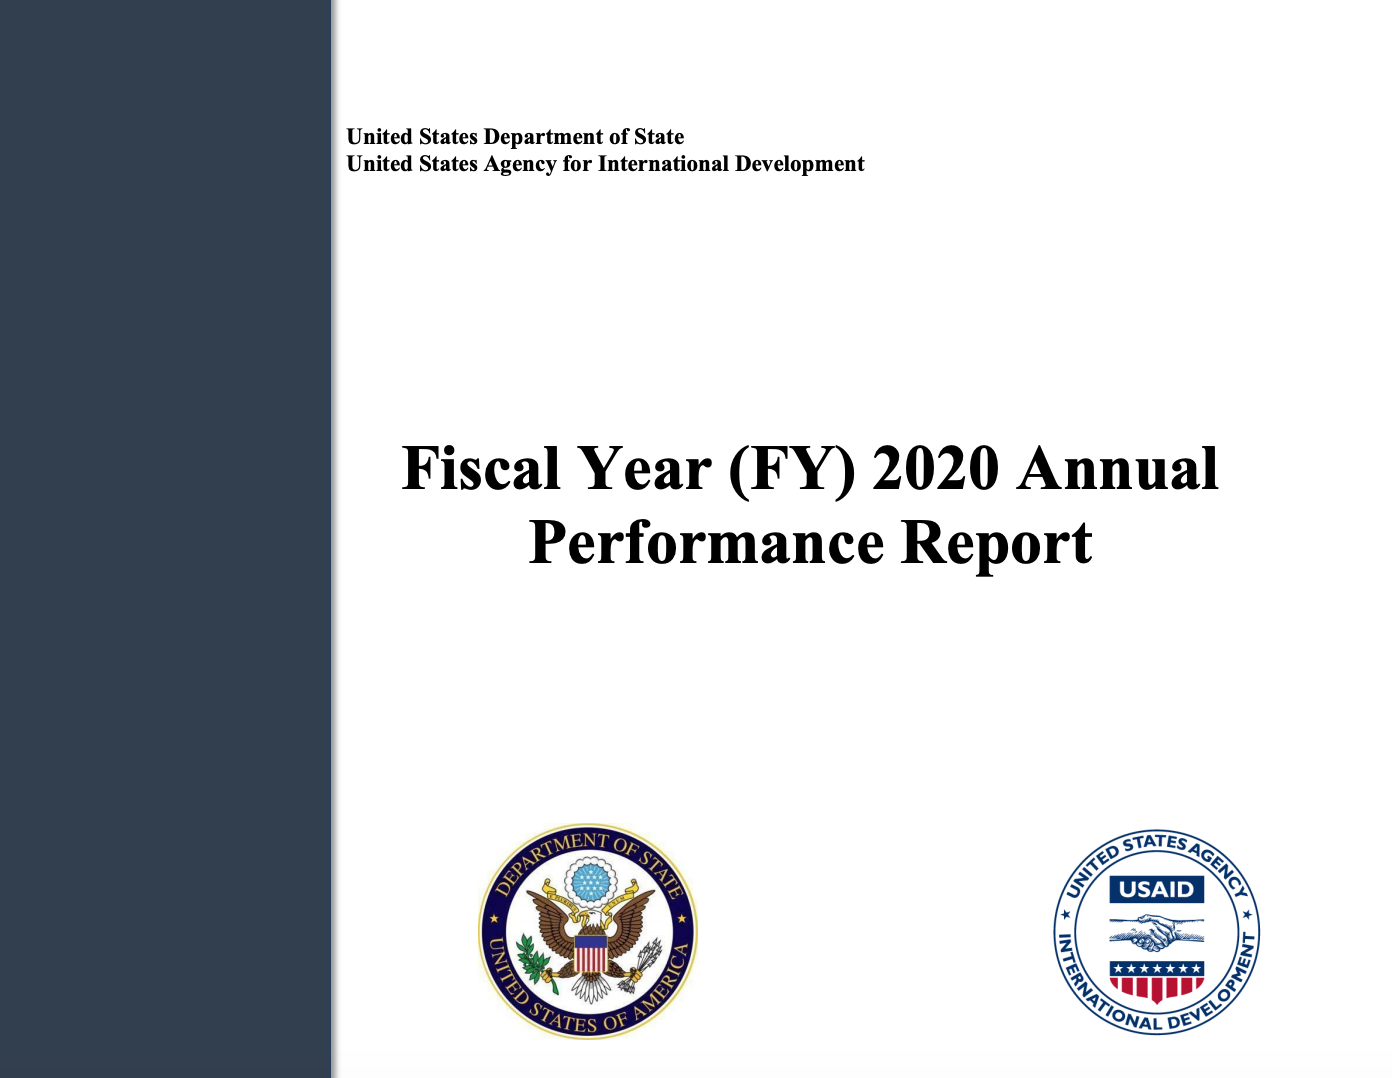 Fiscal Year 2020 Annual Performance Report